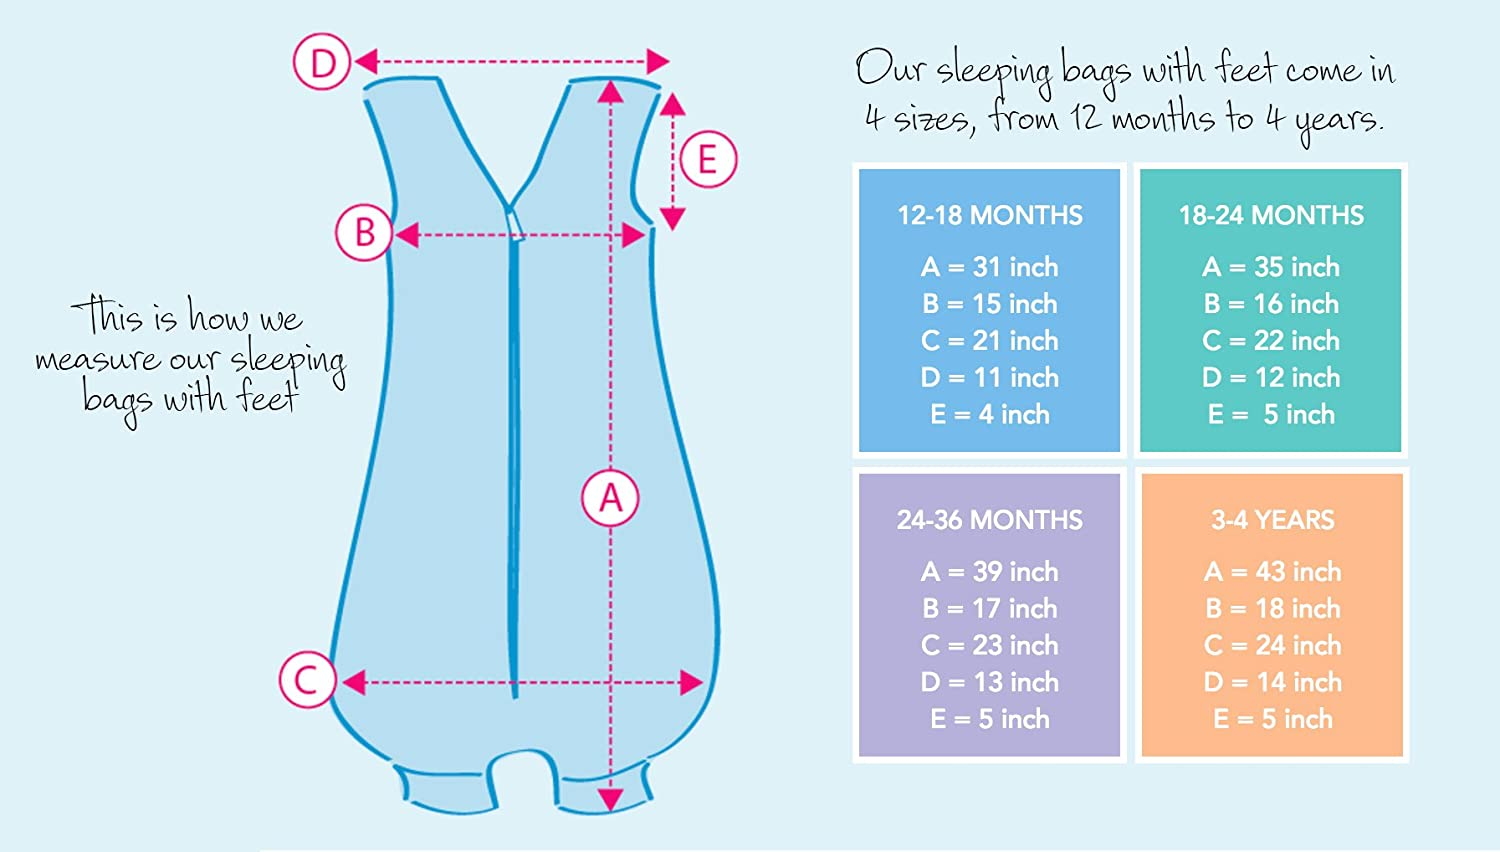 Amazon.com: Slumbersafe Sleeping Bag with Feet 2.5 Tog Simply Owl 24-36 Months: Baby